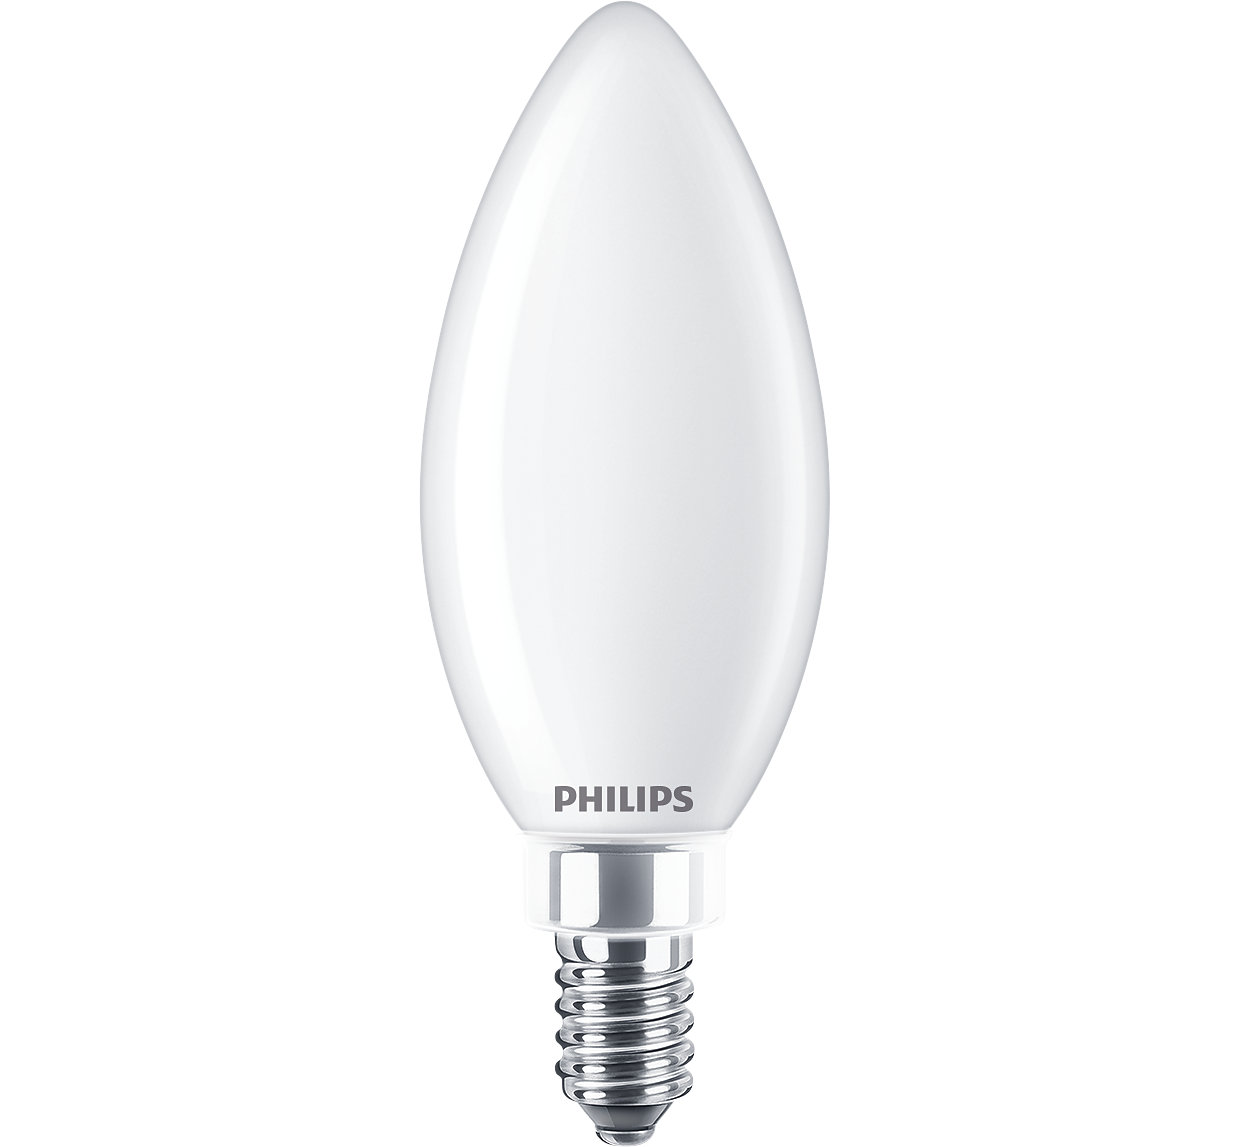 Energy saving elegance that gives a beautiful sparkle of light